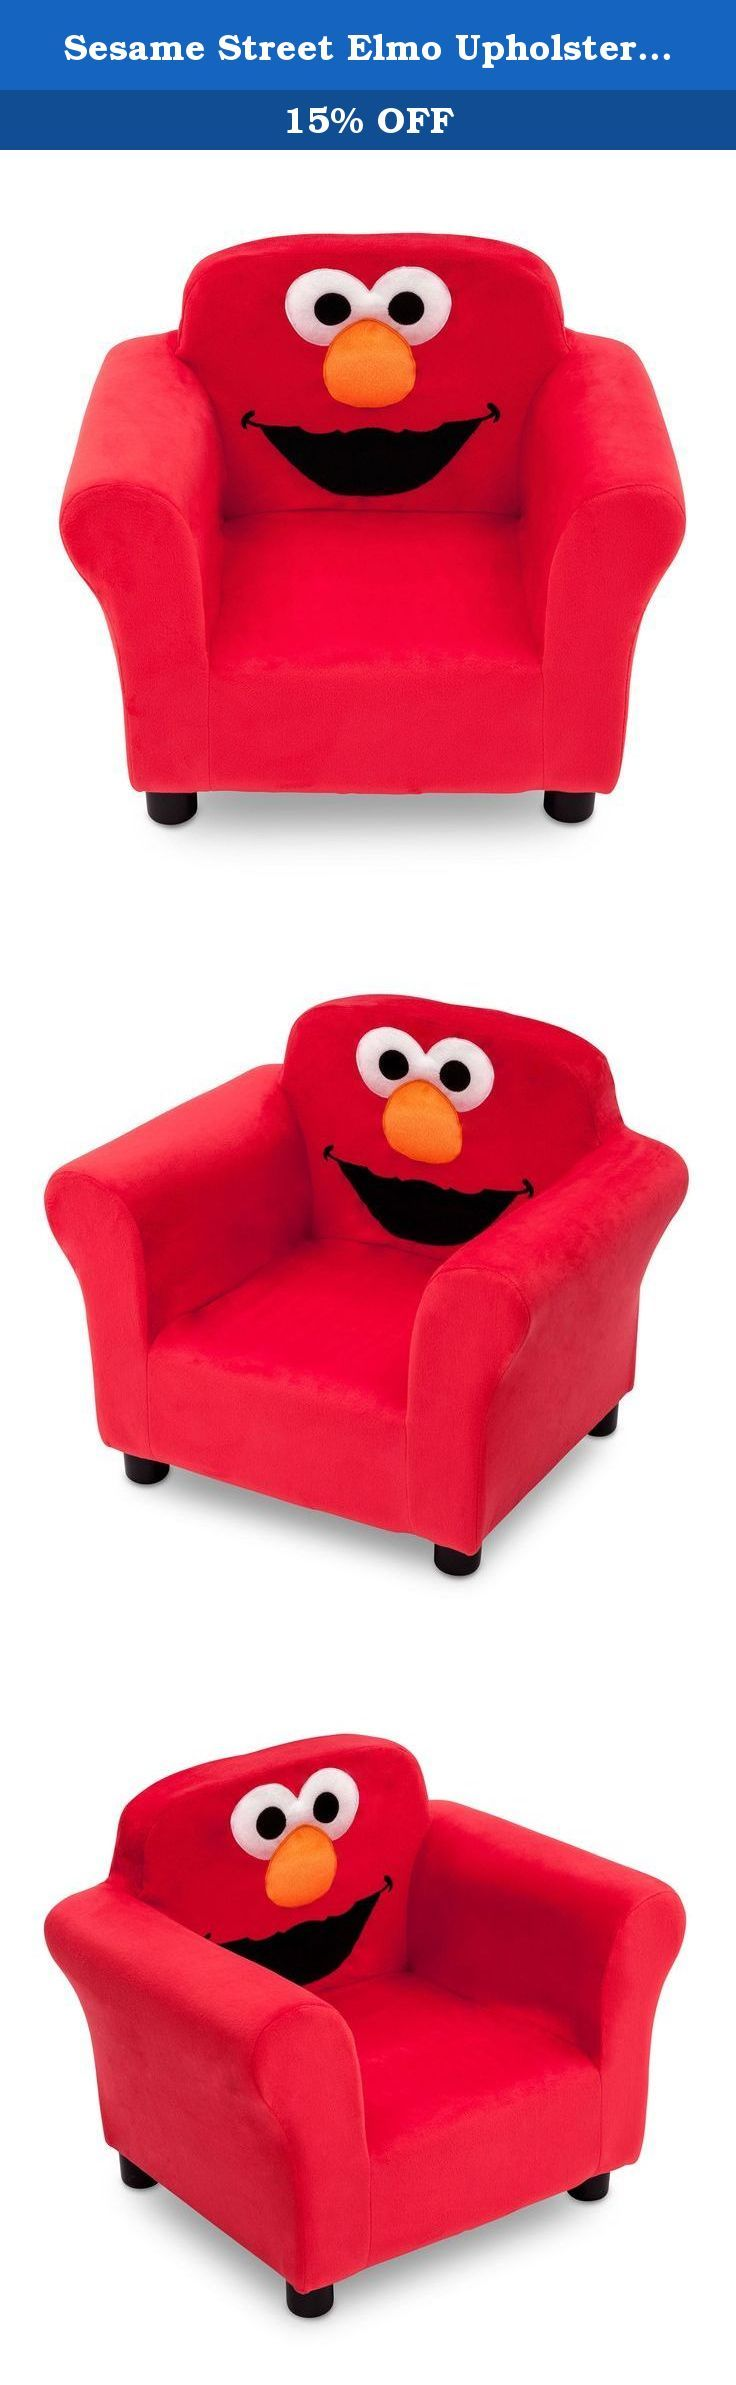 Sesame Street Elmo Upholstered Chair. Brought to you by the letter E, the Sesame Street Elmo Upholstered Chair from Delta Children features Elmo's friendly face. A cozy toddler chair, it features a durable wood frame, plush foam padding and embroidered details that make Elmo instantly recognizable. The perfect kids-only spot for reading, watching movies or just relaxing, it makes any activity extra special.